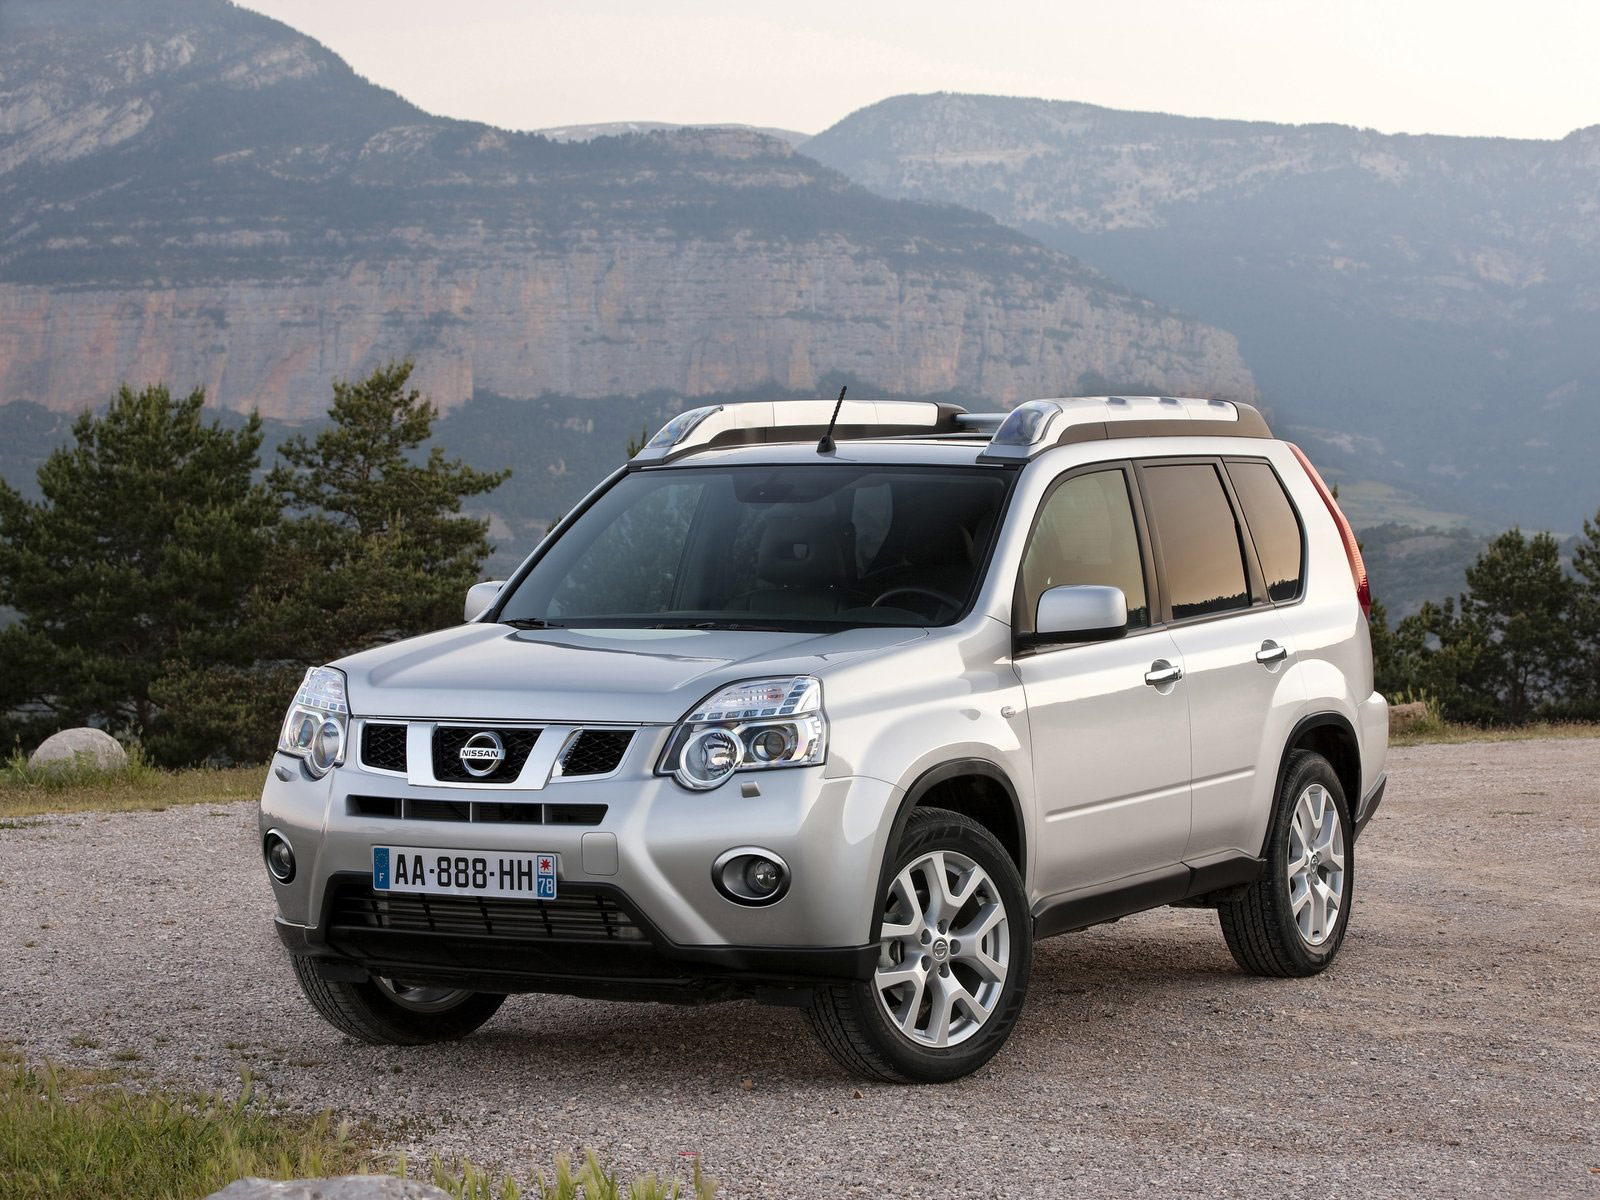 2011 Nissan X Trail Car Photos Accident Lawyers Information